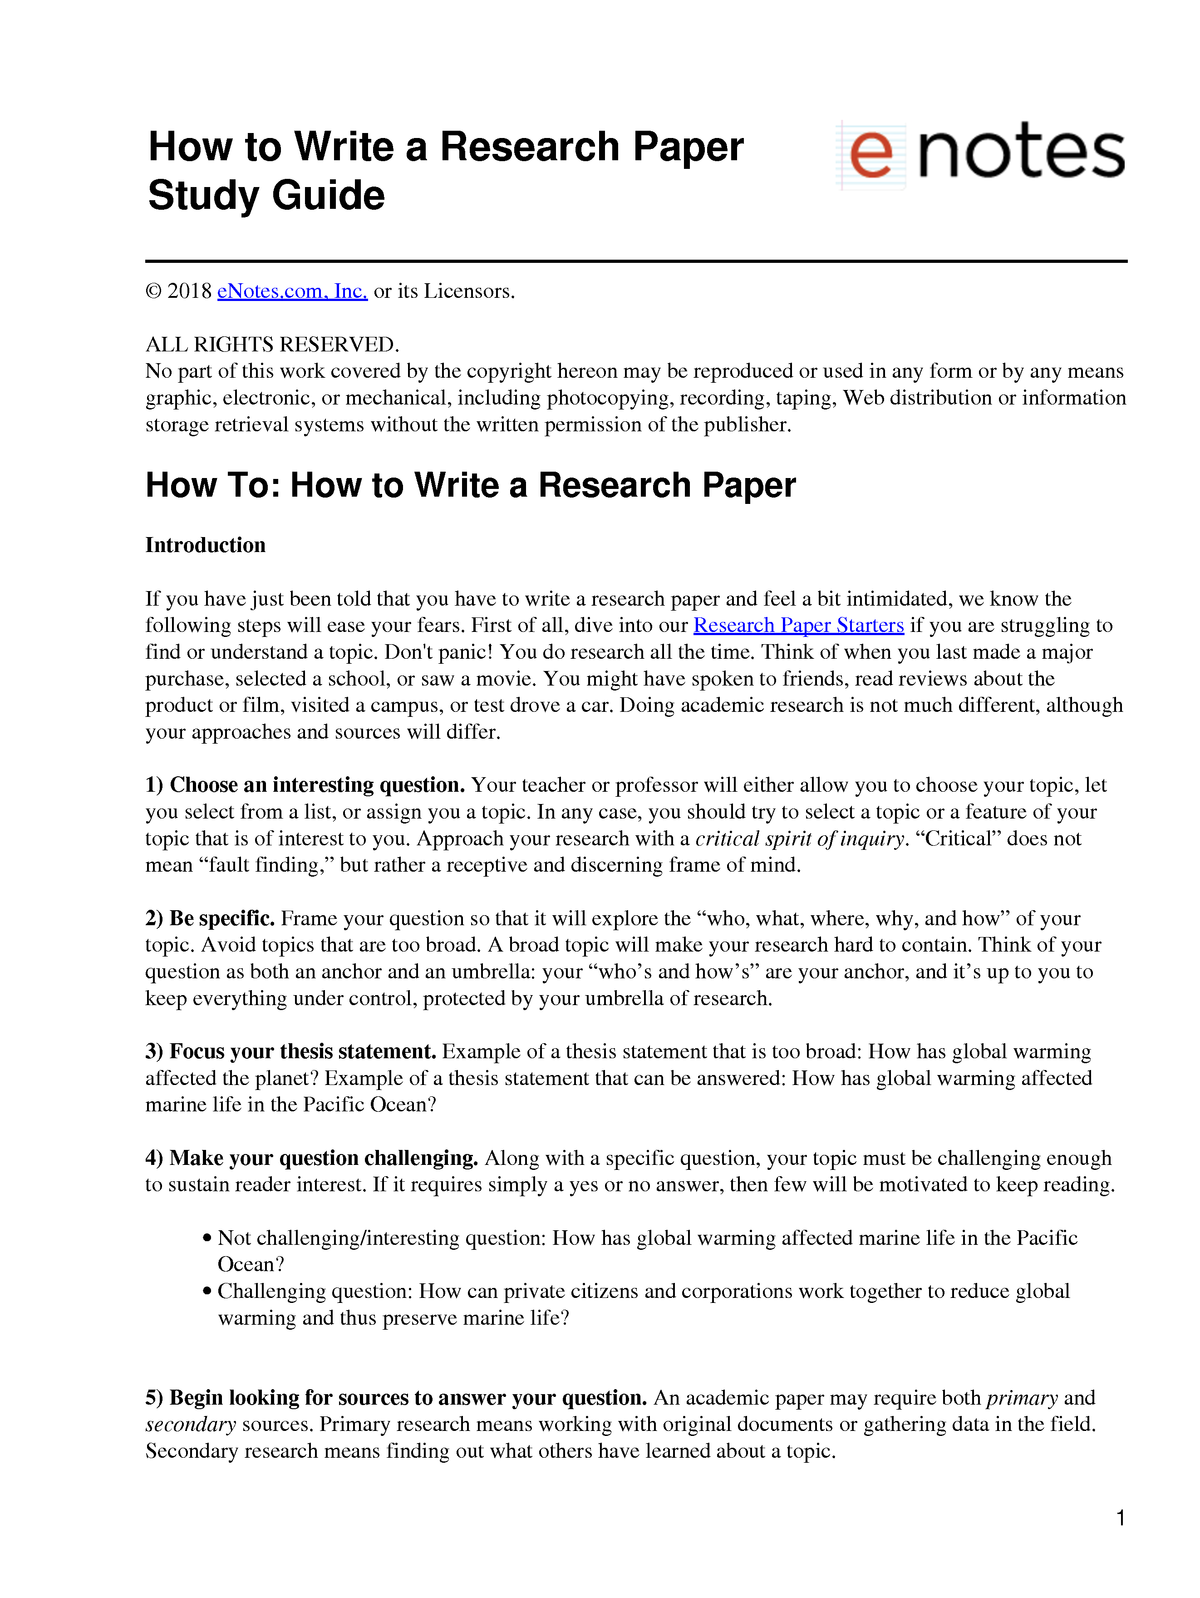 Questions To Be Answered In A Research Paper